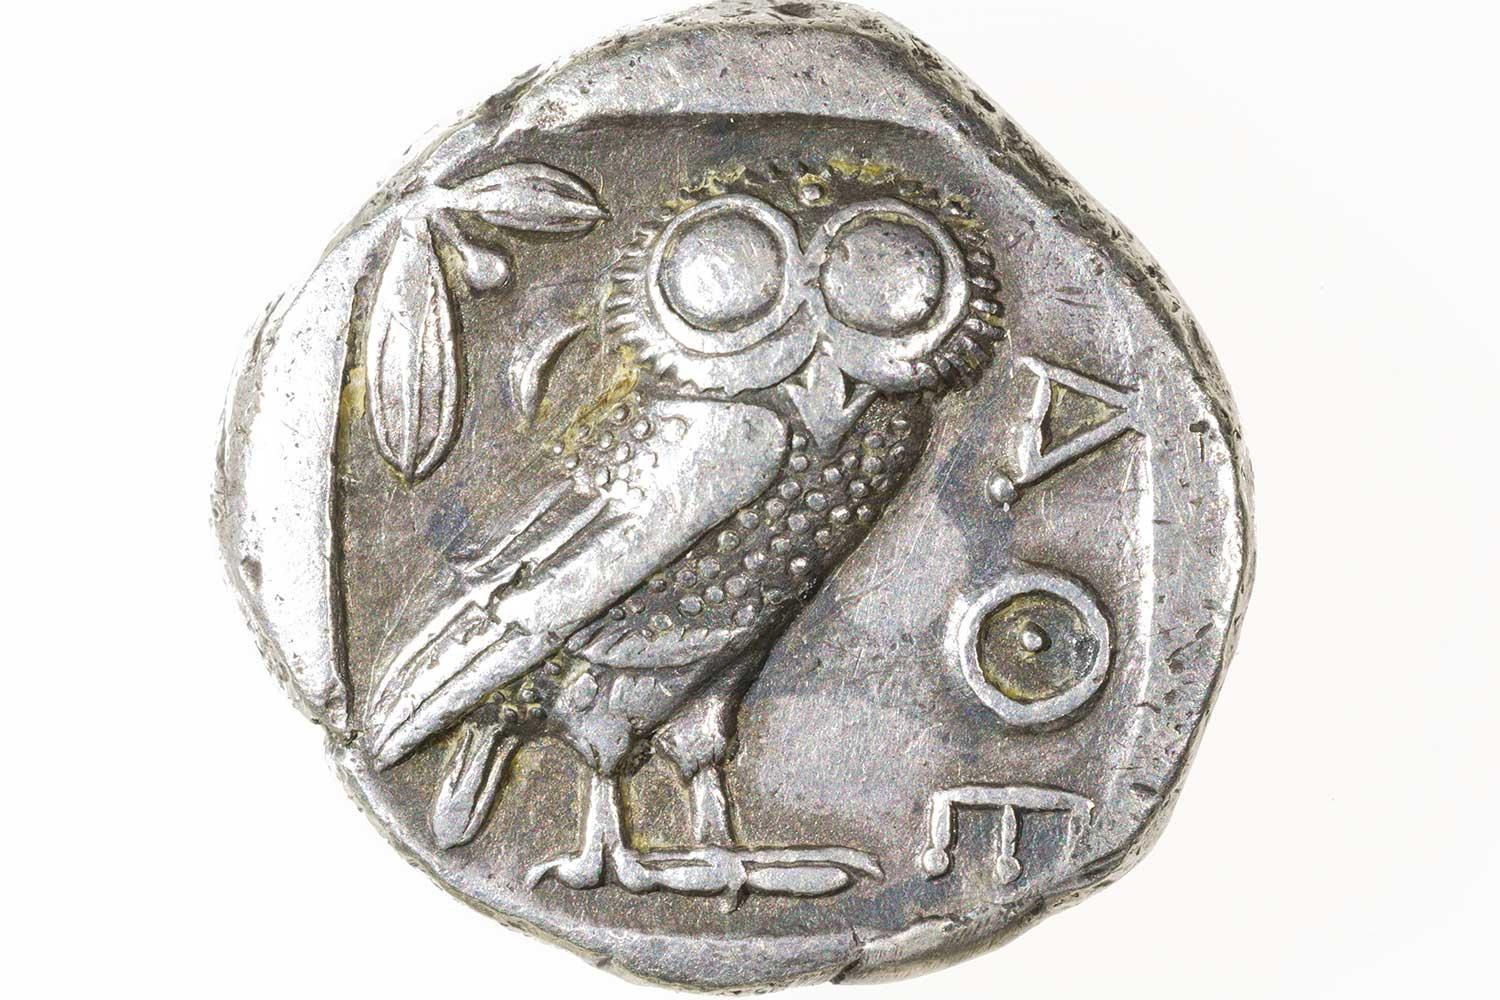 Silver coin depicting owl in center, olive branch on the top left, and Greek AOE on side